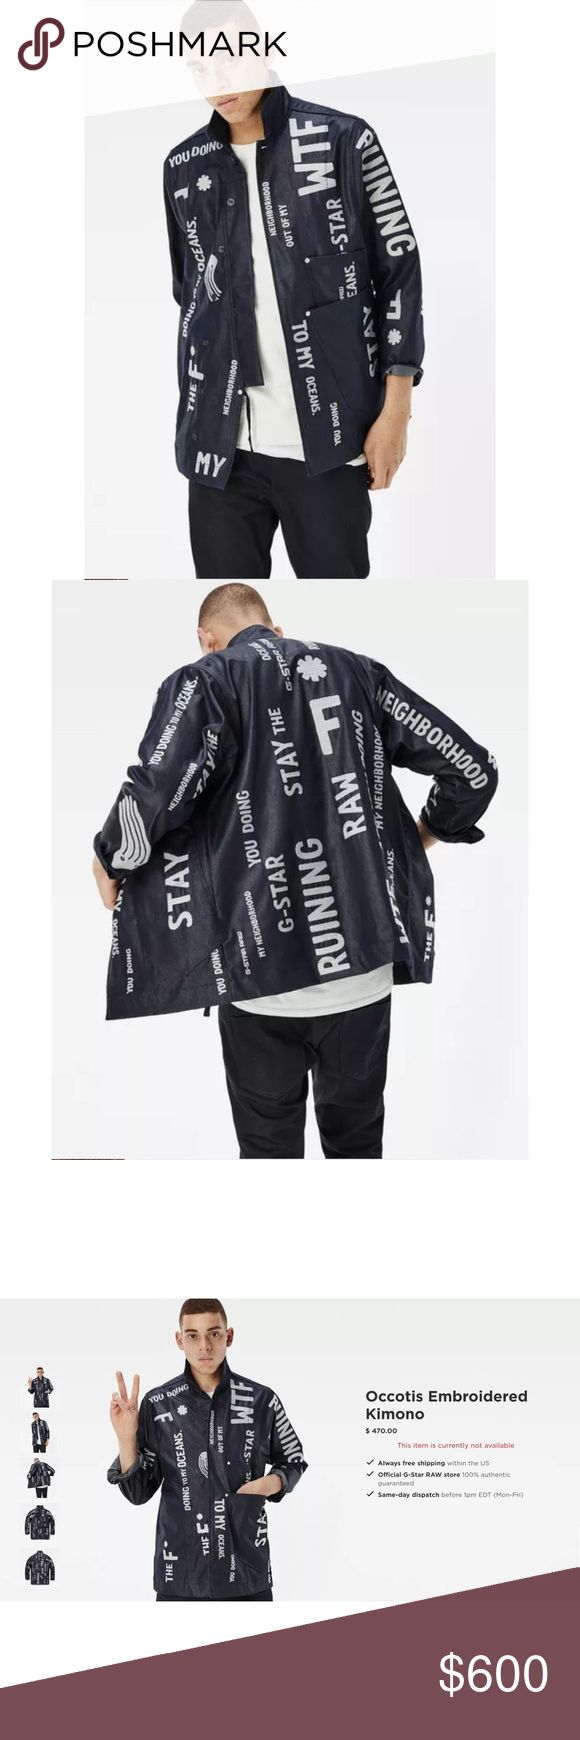 """G-Star Raw For The Oceans Pharrell Jacket NEW G-Star Raw 'Occotis Embroidered Kimono' Denim Jacket. Pharrell's Raw for The Oceans rare piece. Limited 1 of 250. Across Chest: 23.5"""", Sleeve from mid back: 35"""", Sleeve from shoulder: 25.5"""", Across shoulders: 18"""", Length: 32.5"""" G-Star Jackets & Coats Lightweight & Shirt Jackets"""